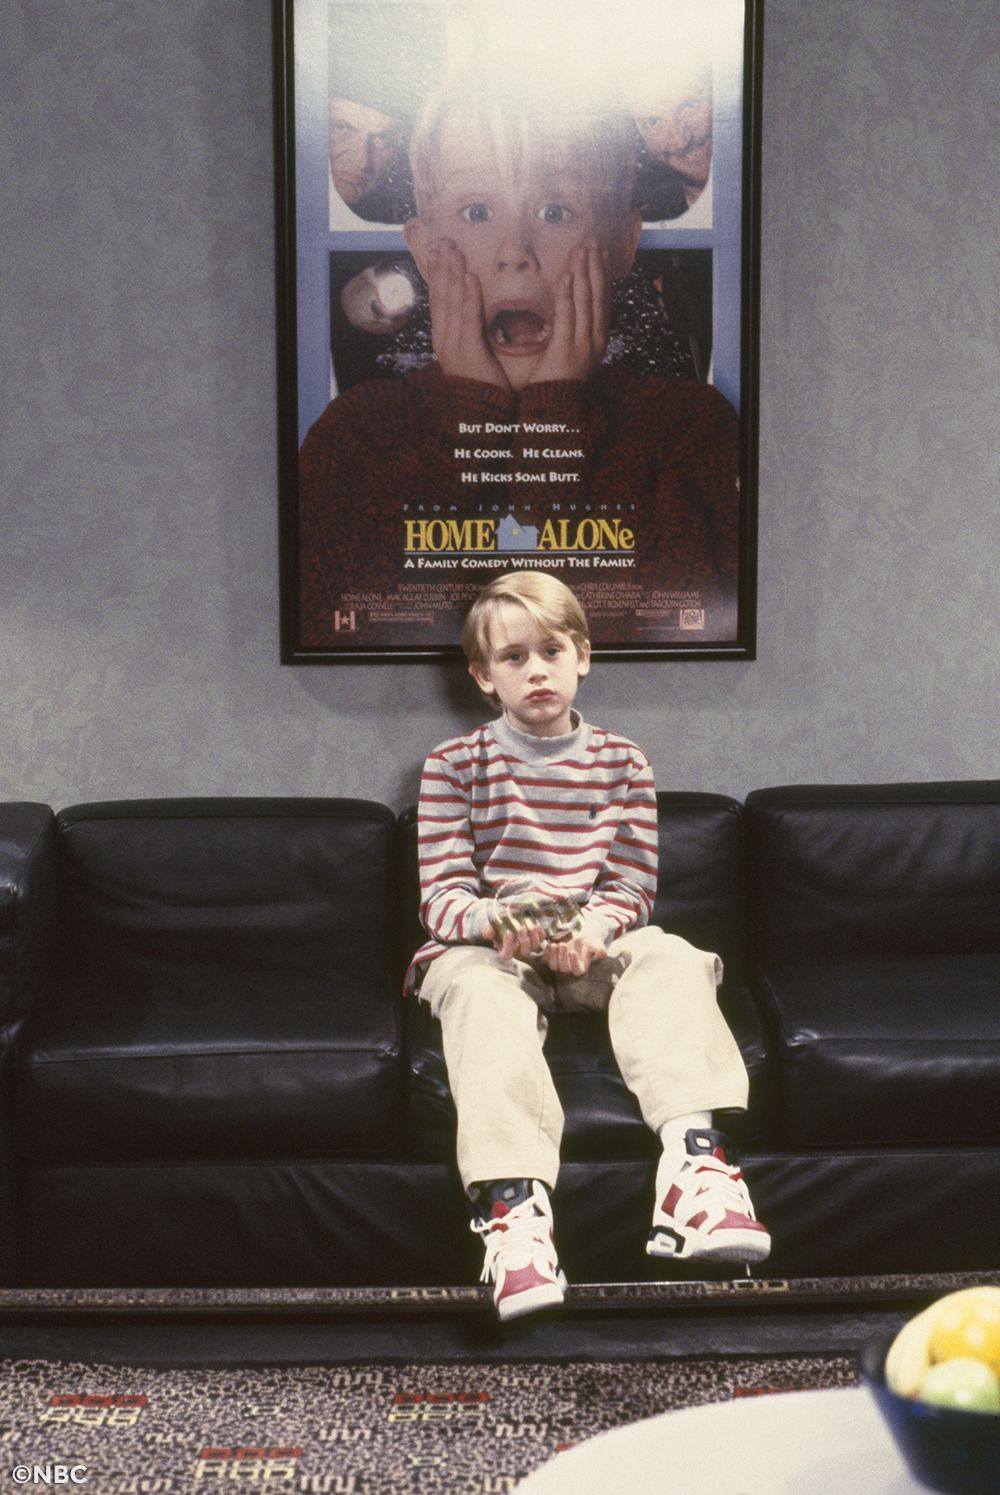 This Day In Snl History November 23 1991 When The Snl Cast Picks On Macaulay Culkin Home Alone Home Alone Movie